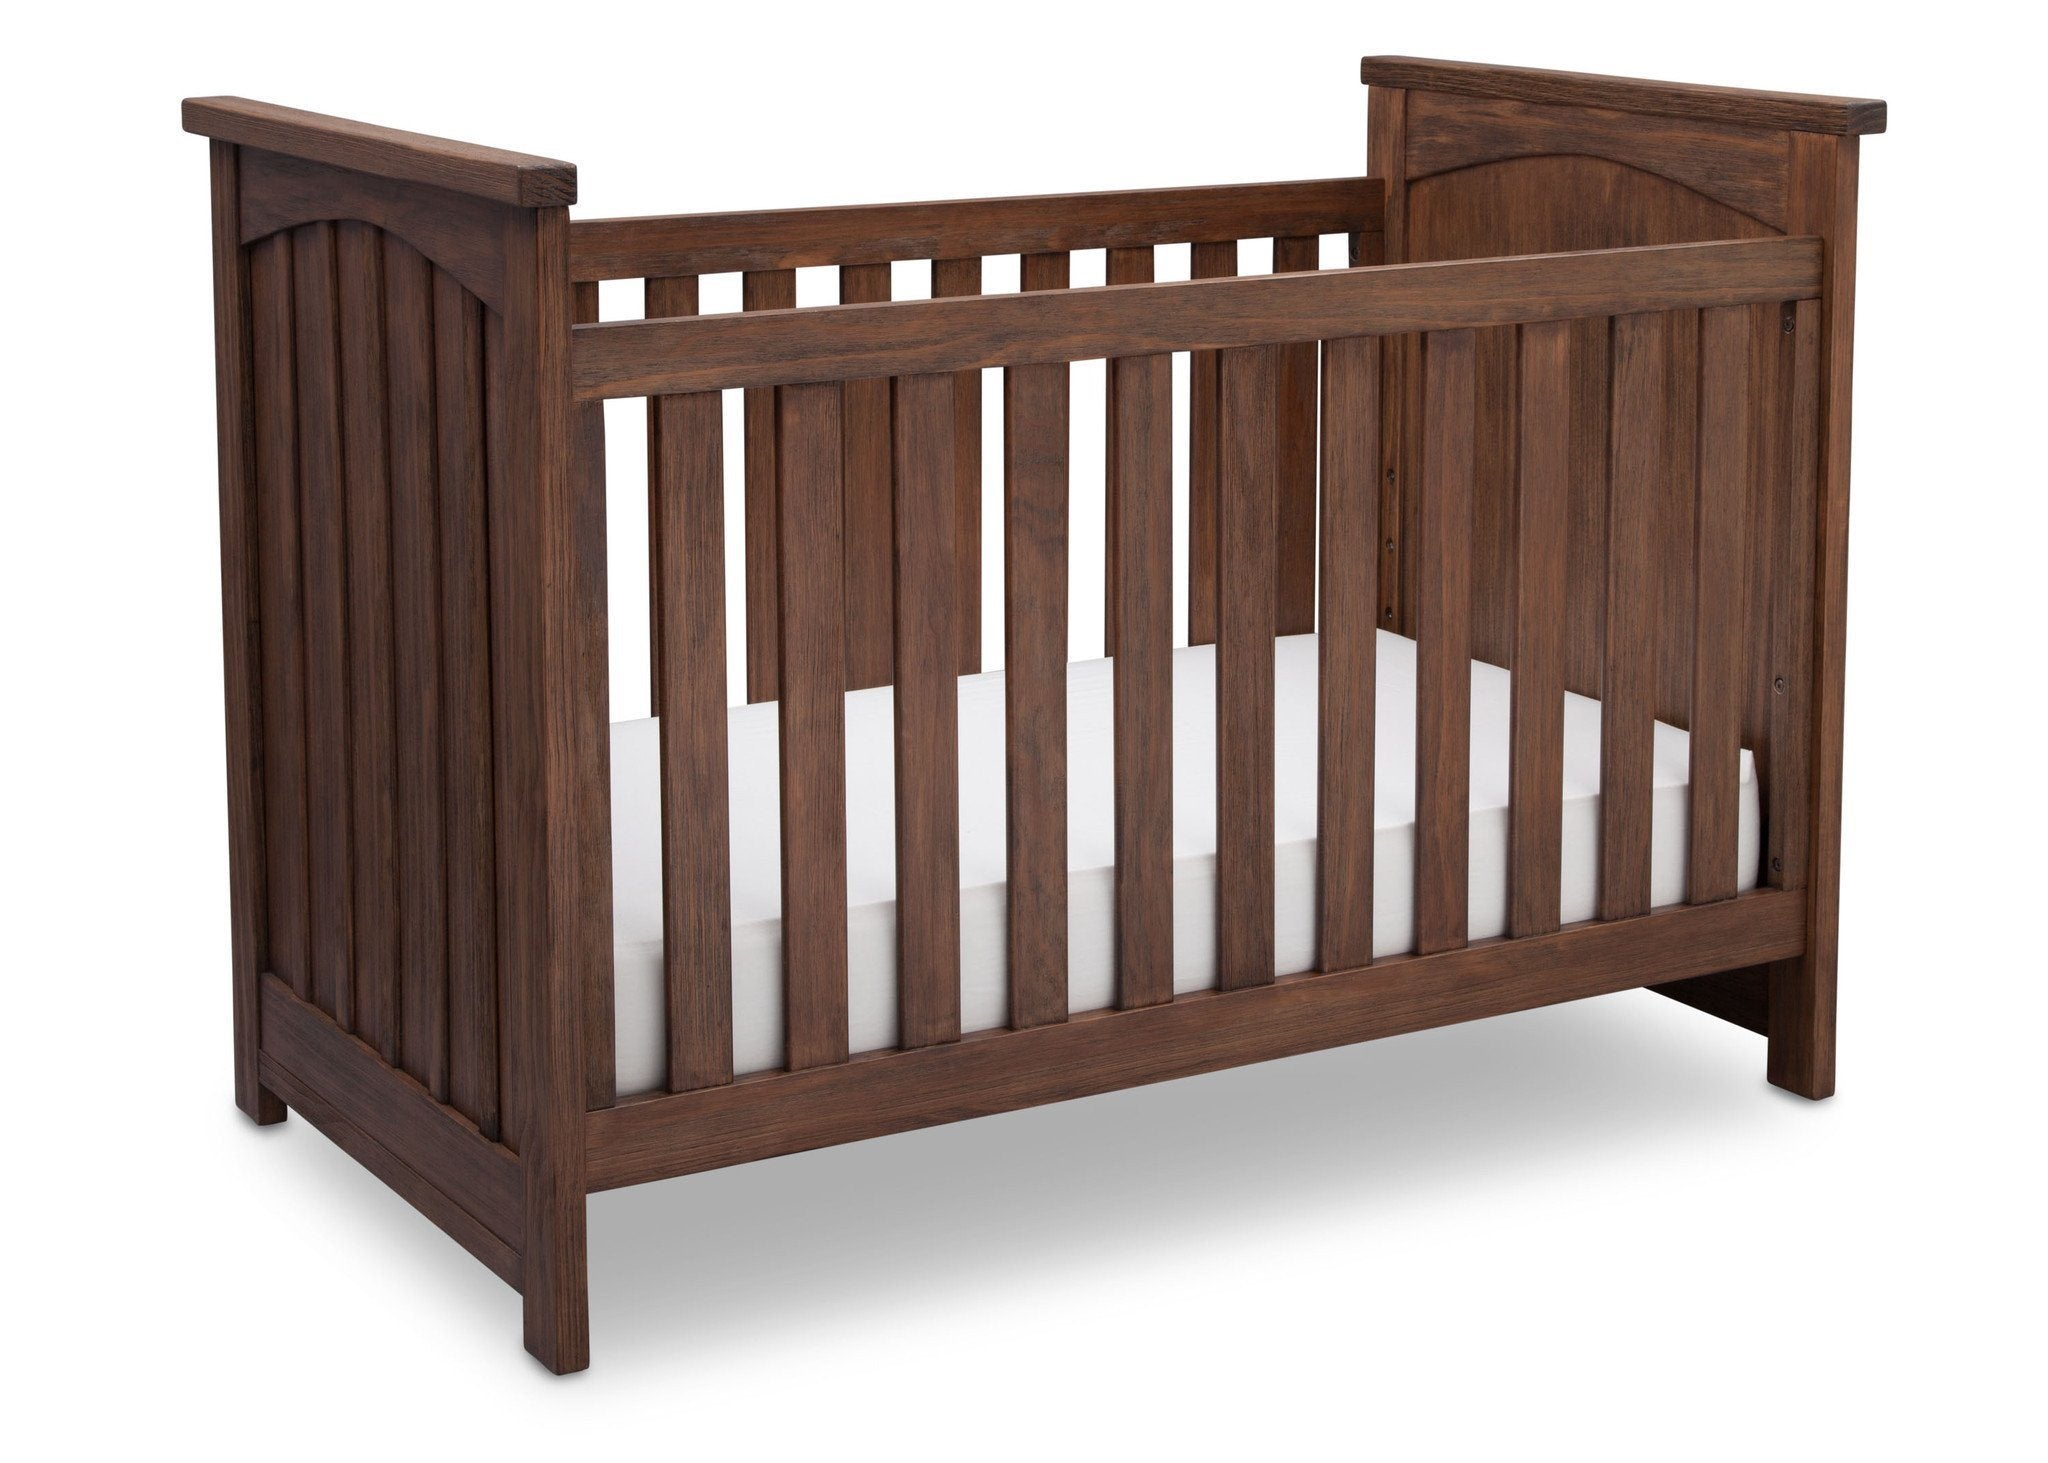 Serta Rustic Oak (229) Northbrook 3-in-1 Crib, Crib Conversion with Side View b3b